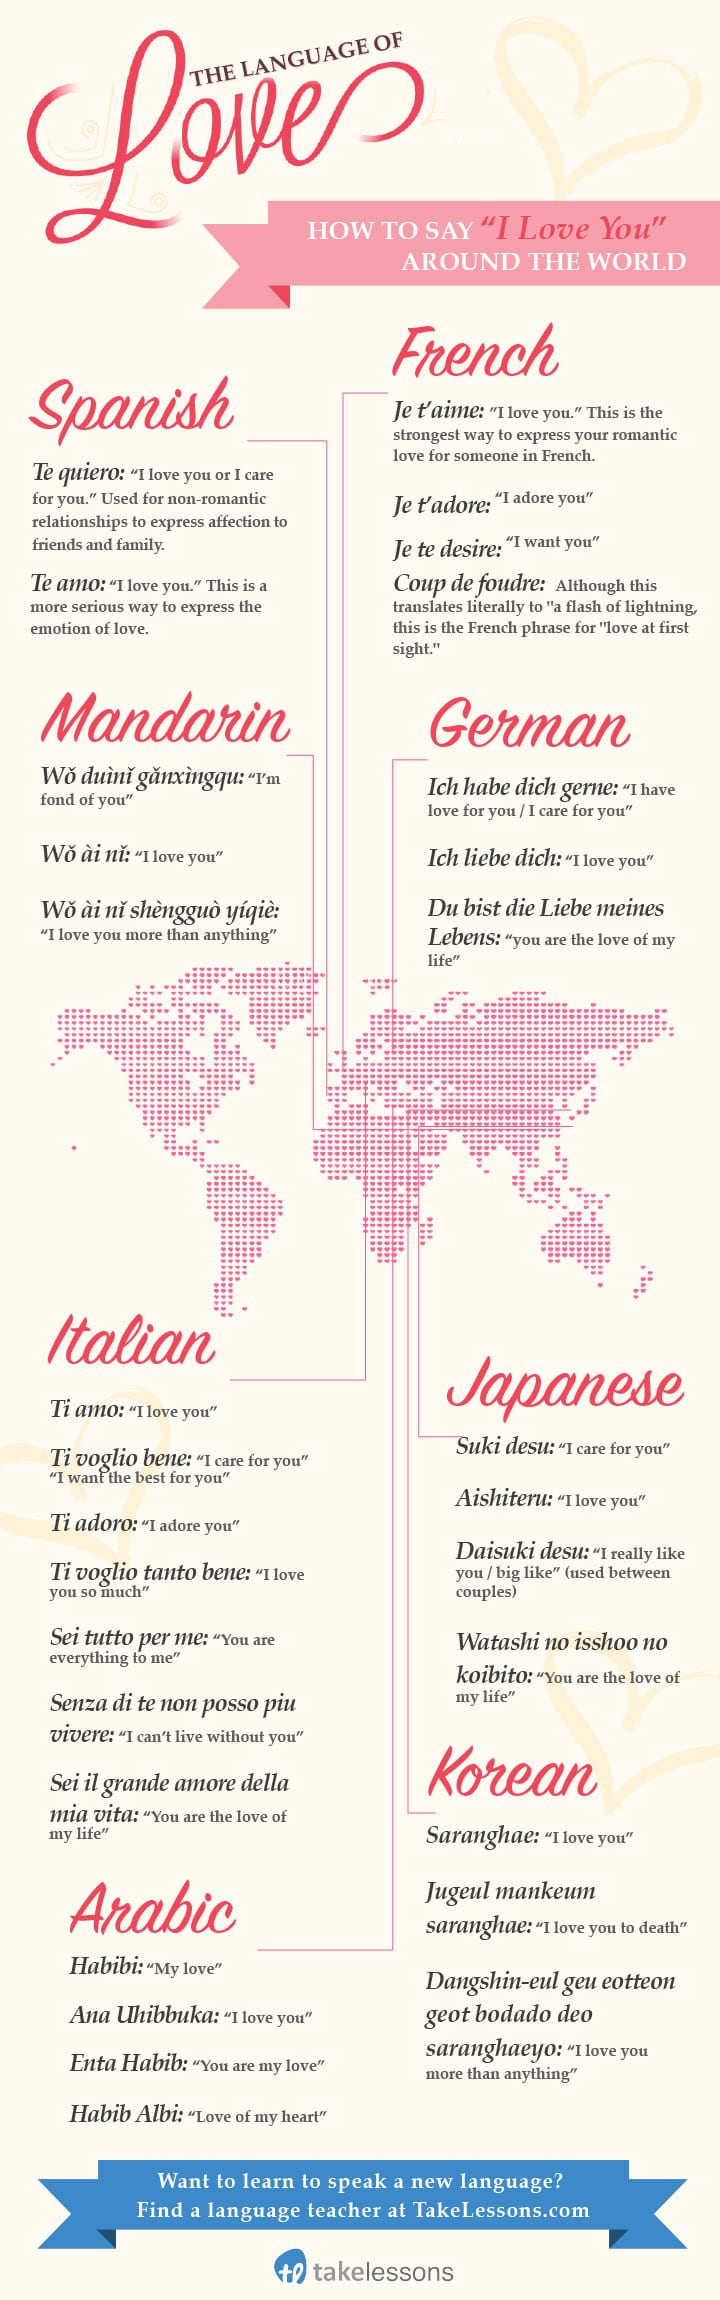 How to say i love you in different languages say i love you in all different languages buycottarizona Image collections